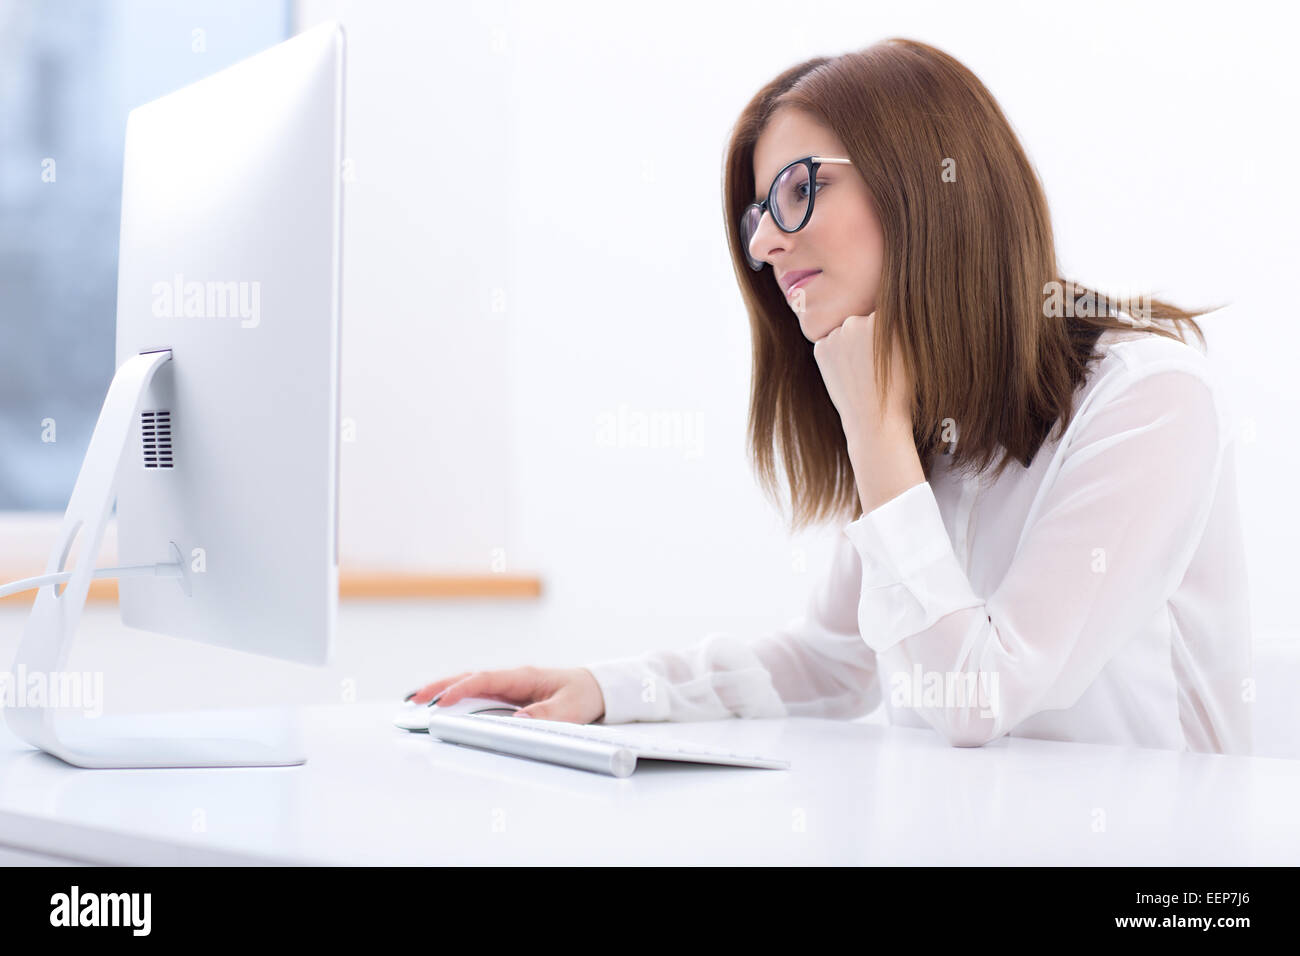 Young businesswoman working at office Photo Stock